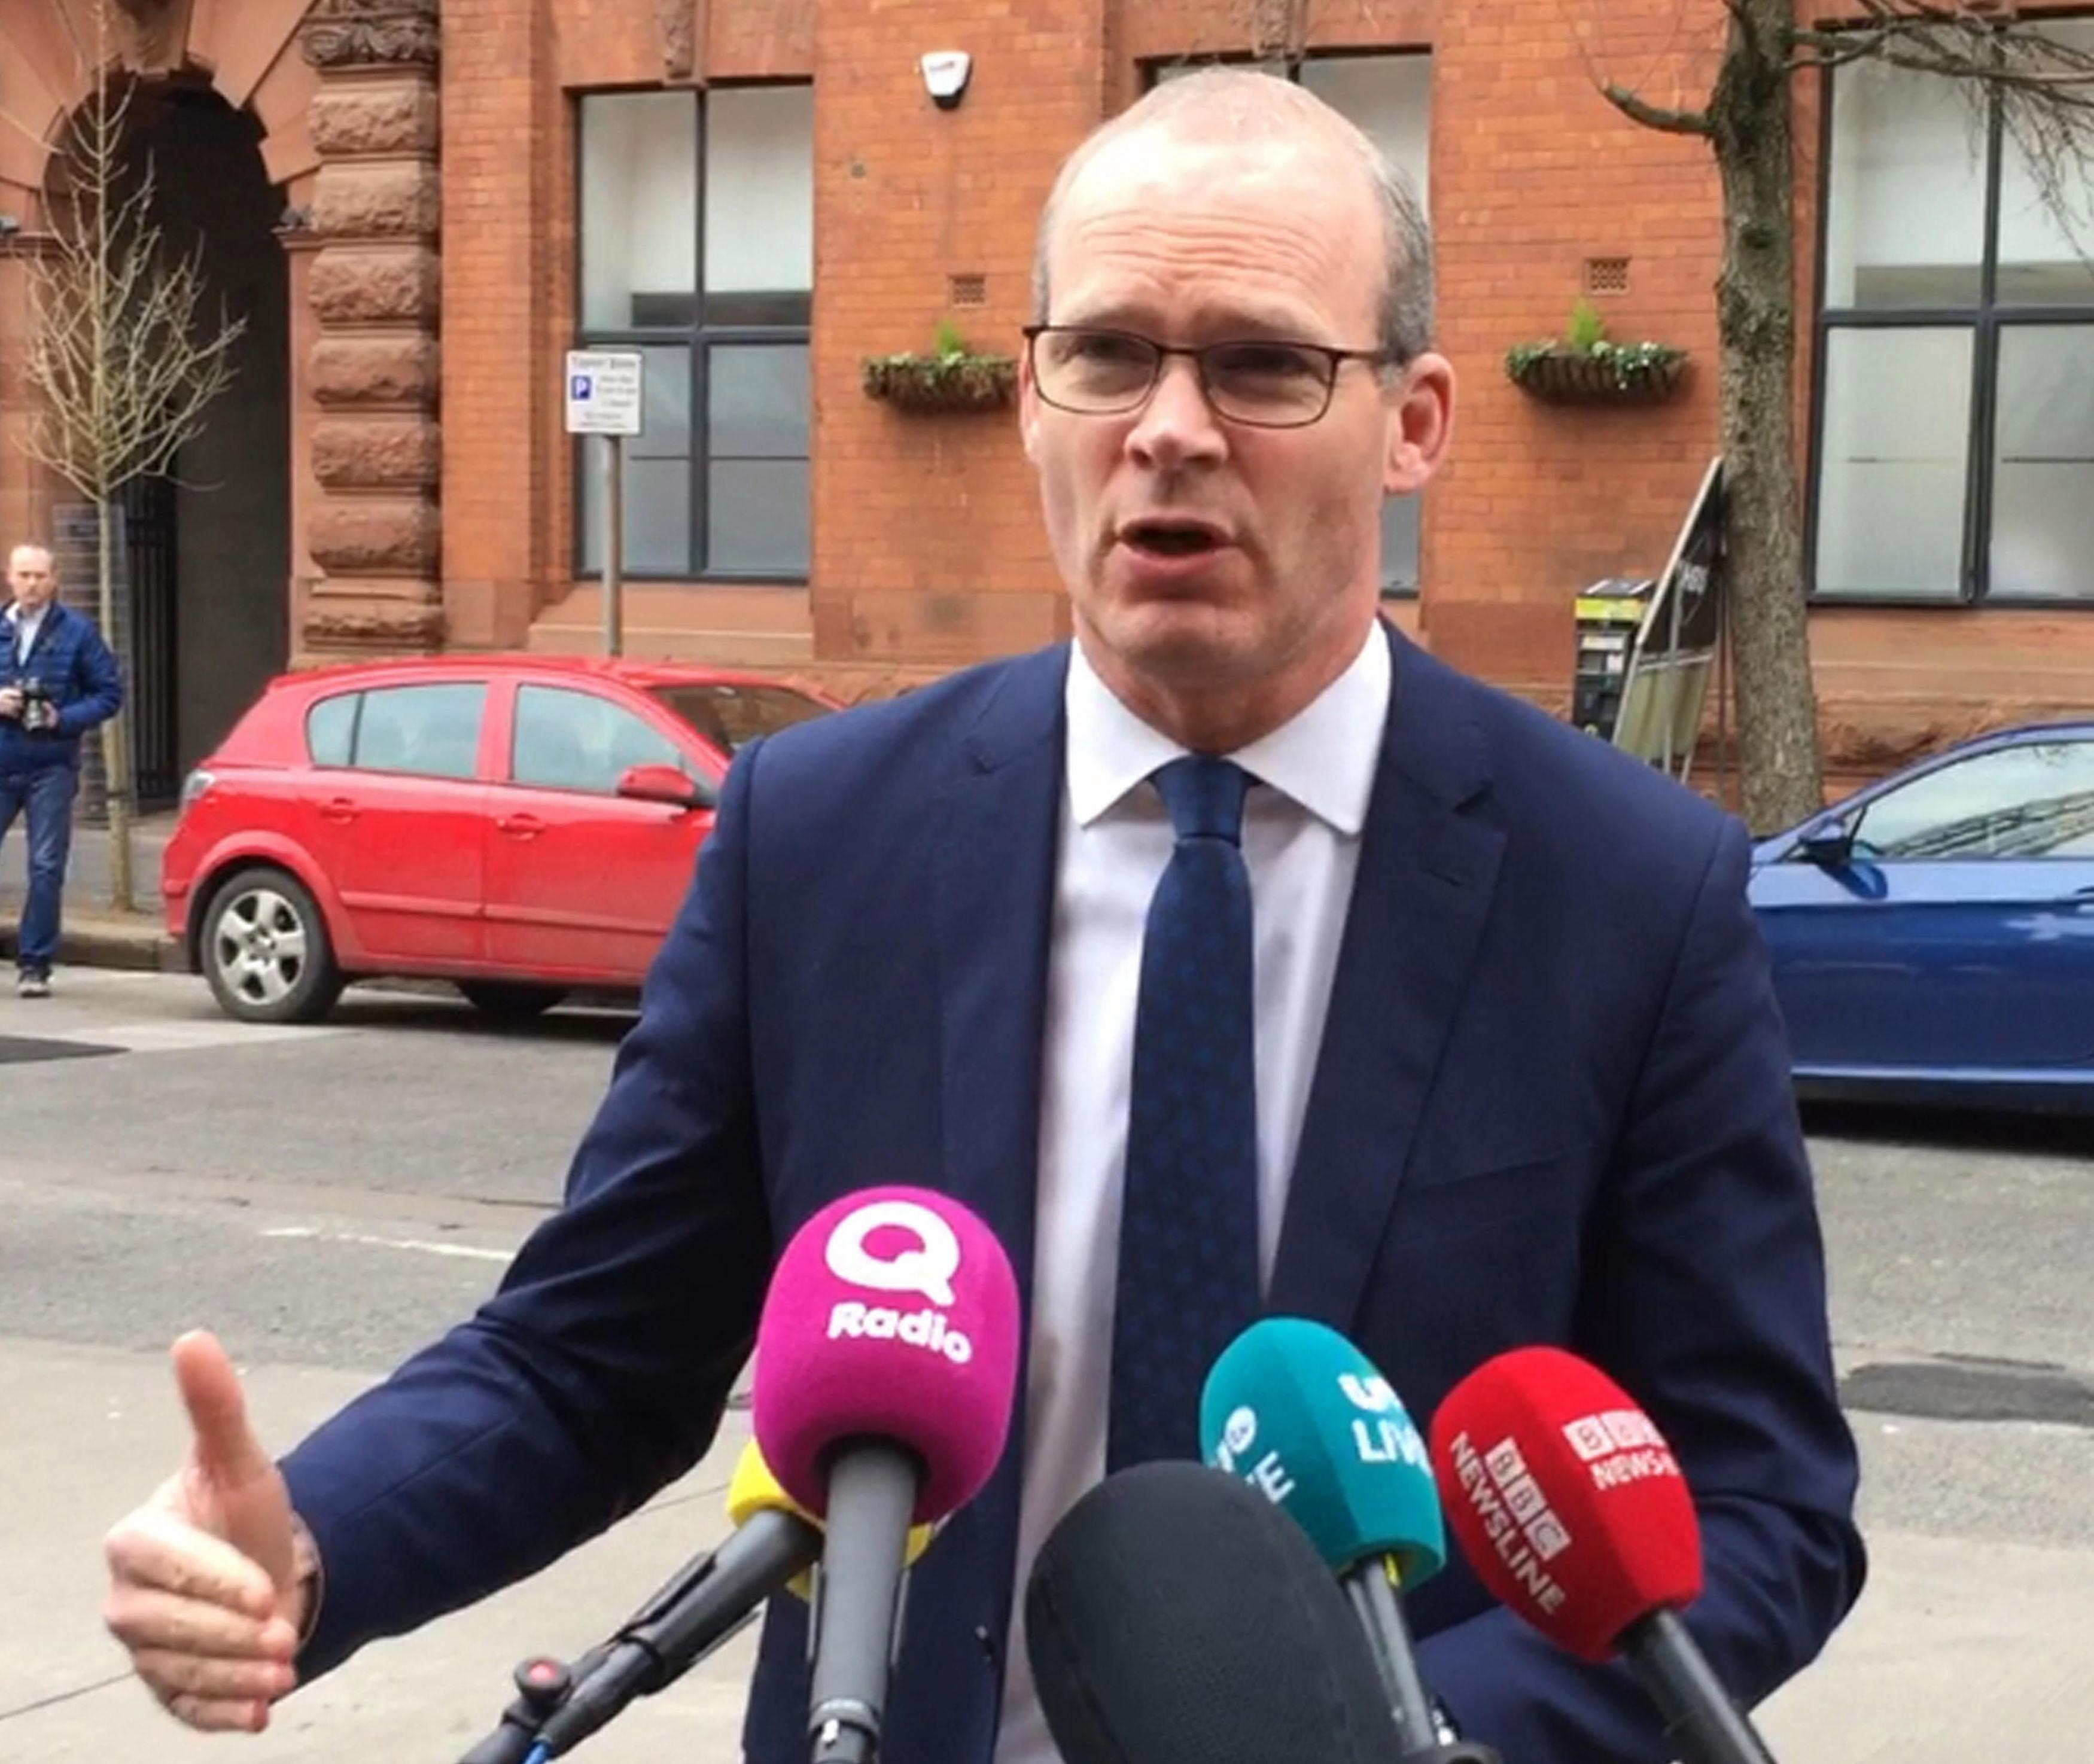 May's Brexit demands are like saying 'give me what I want or I'll jump out of the window', Irish leader claims in bizarre rant